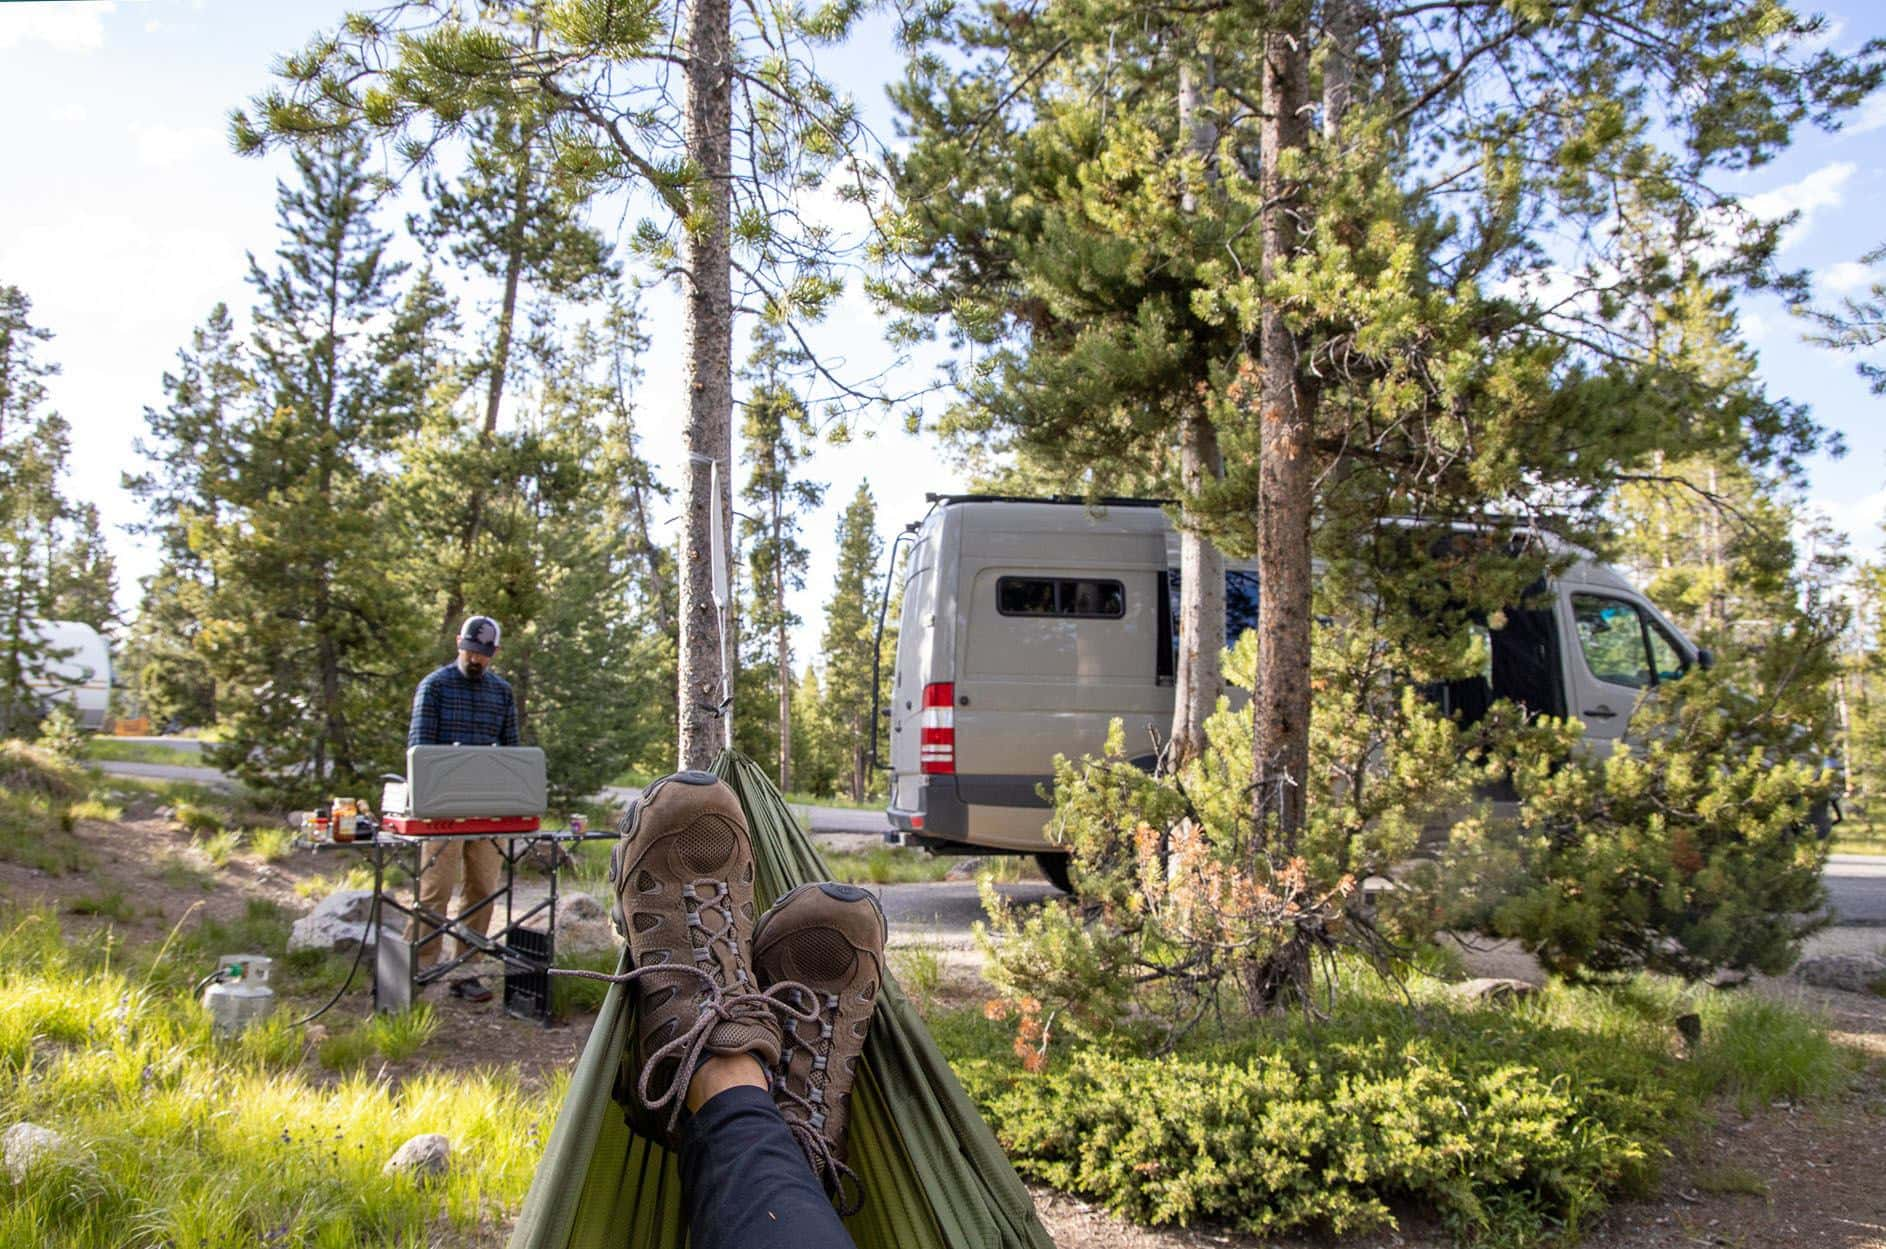 Learn how to car camp like a pro with these Car Camping 101 tips with advice on finding free campsites, packing and gear, cooking and Leave No Trace.